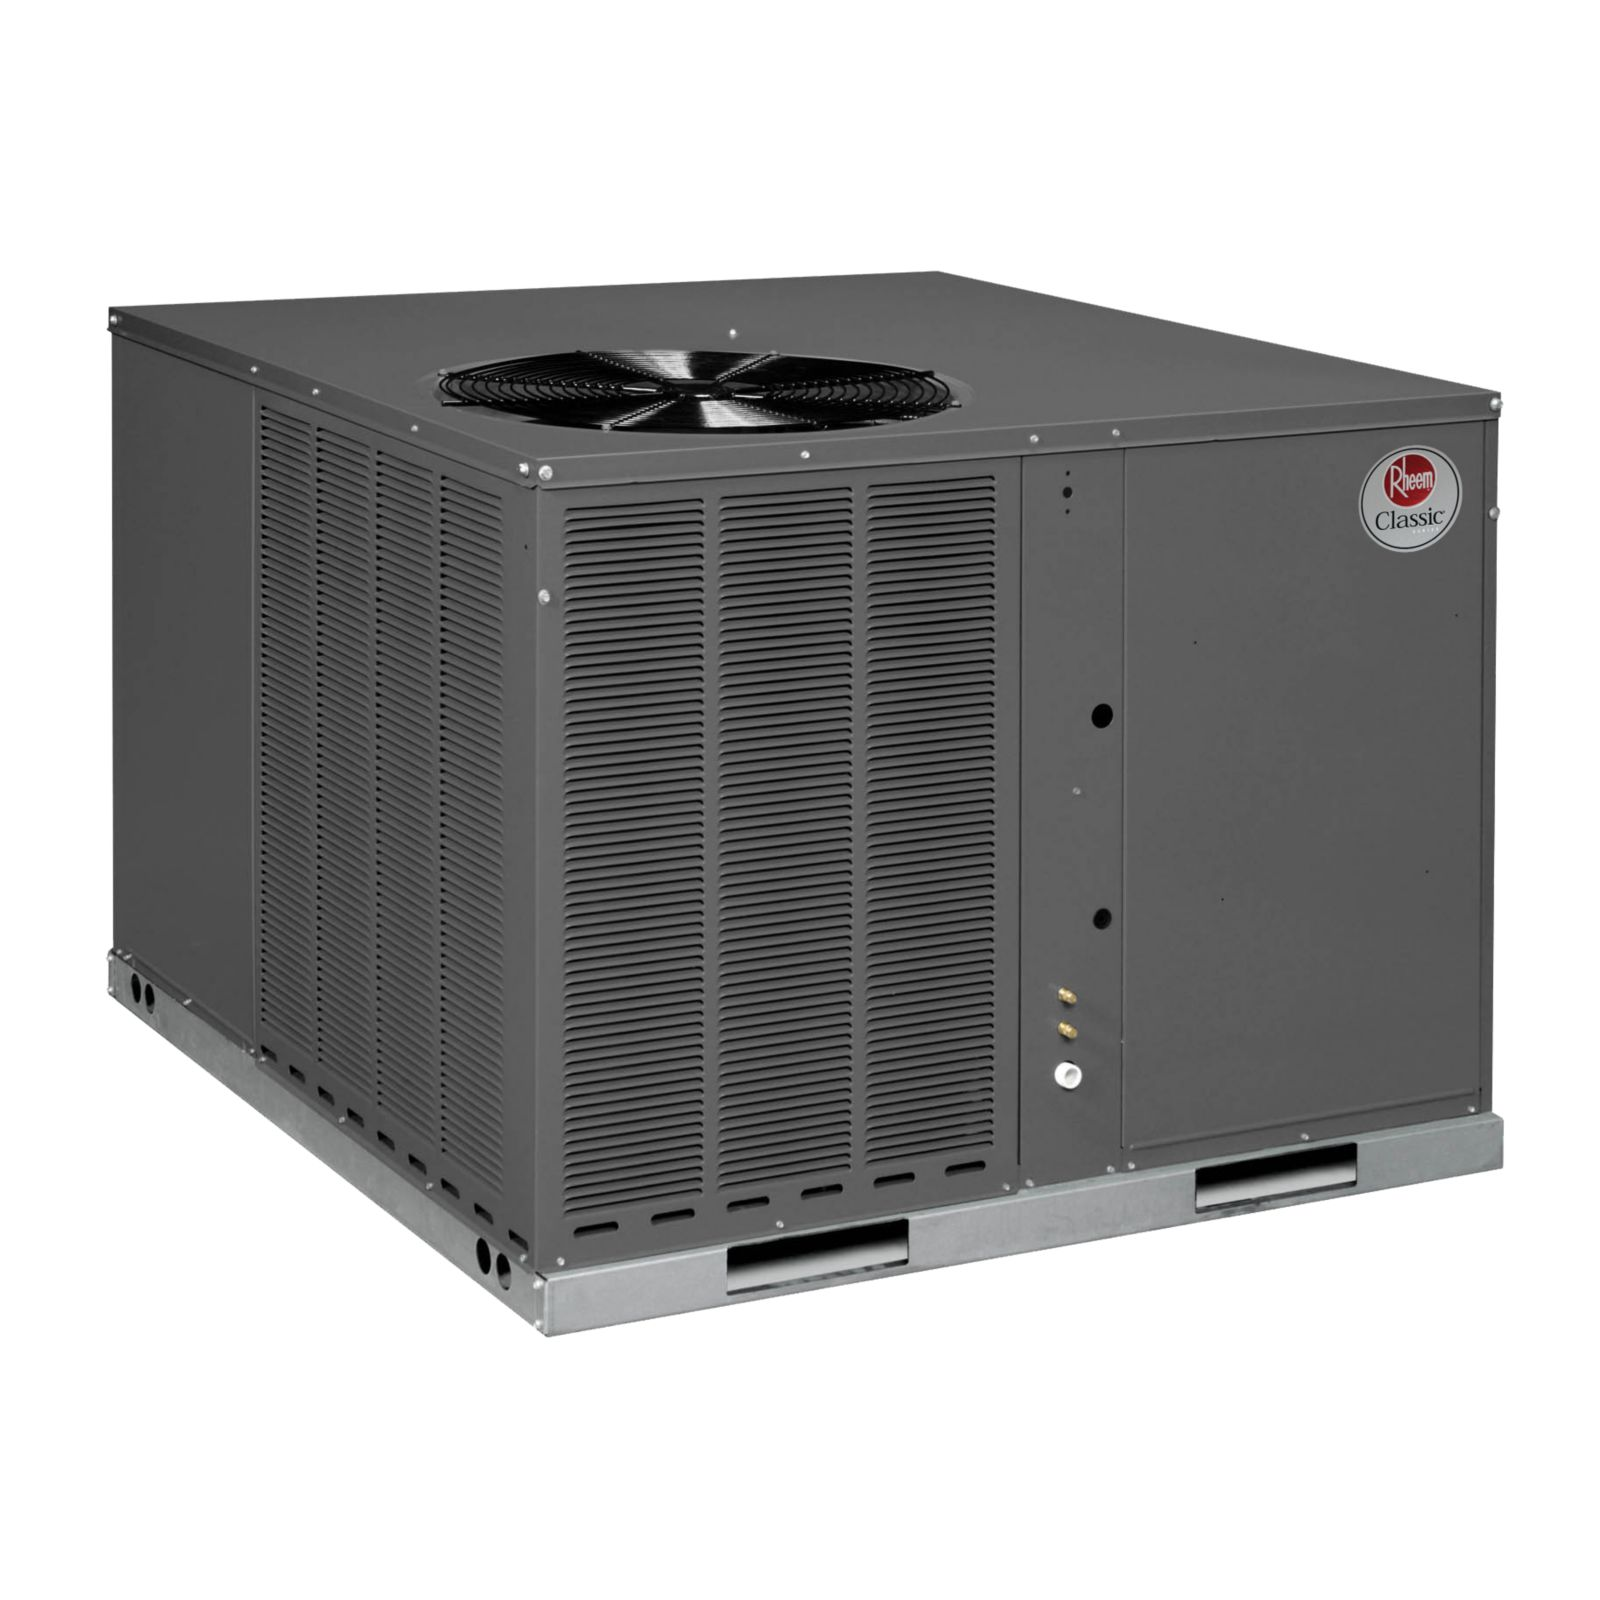 Rheem RQPL-B048JK000AUA - 4 Ton 14 SEER, R-410A, Packaged Heat Pump, 208-230V, 1 Phase